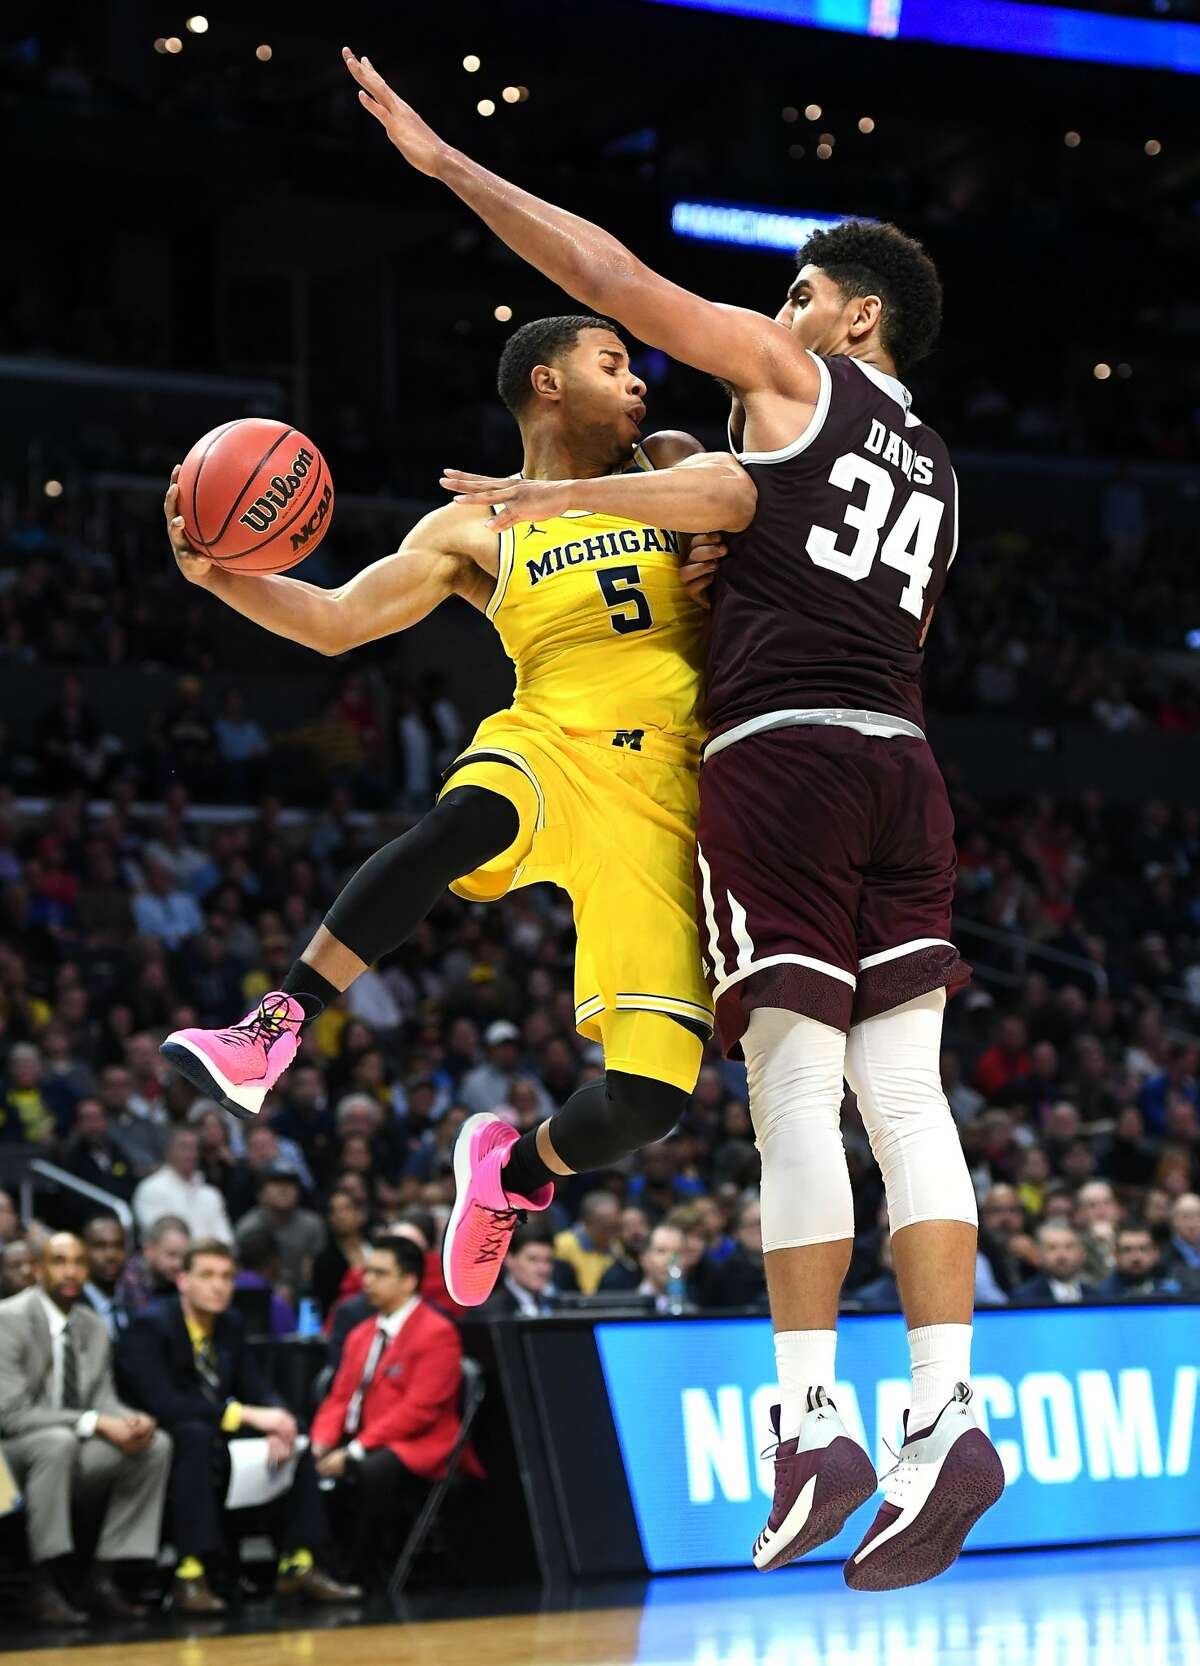 Michigan's Zavier Simpson gets a pass off in fornt of Texas A&M's Tyler Davis in the second half during an NCAA Tournament regional semifinal at Staples Center in Los Angeles on Thursday, March 22, 2018. Michigan advanced, 99-72. (Wally Skalij/Los Angeles Times/TNS)